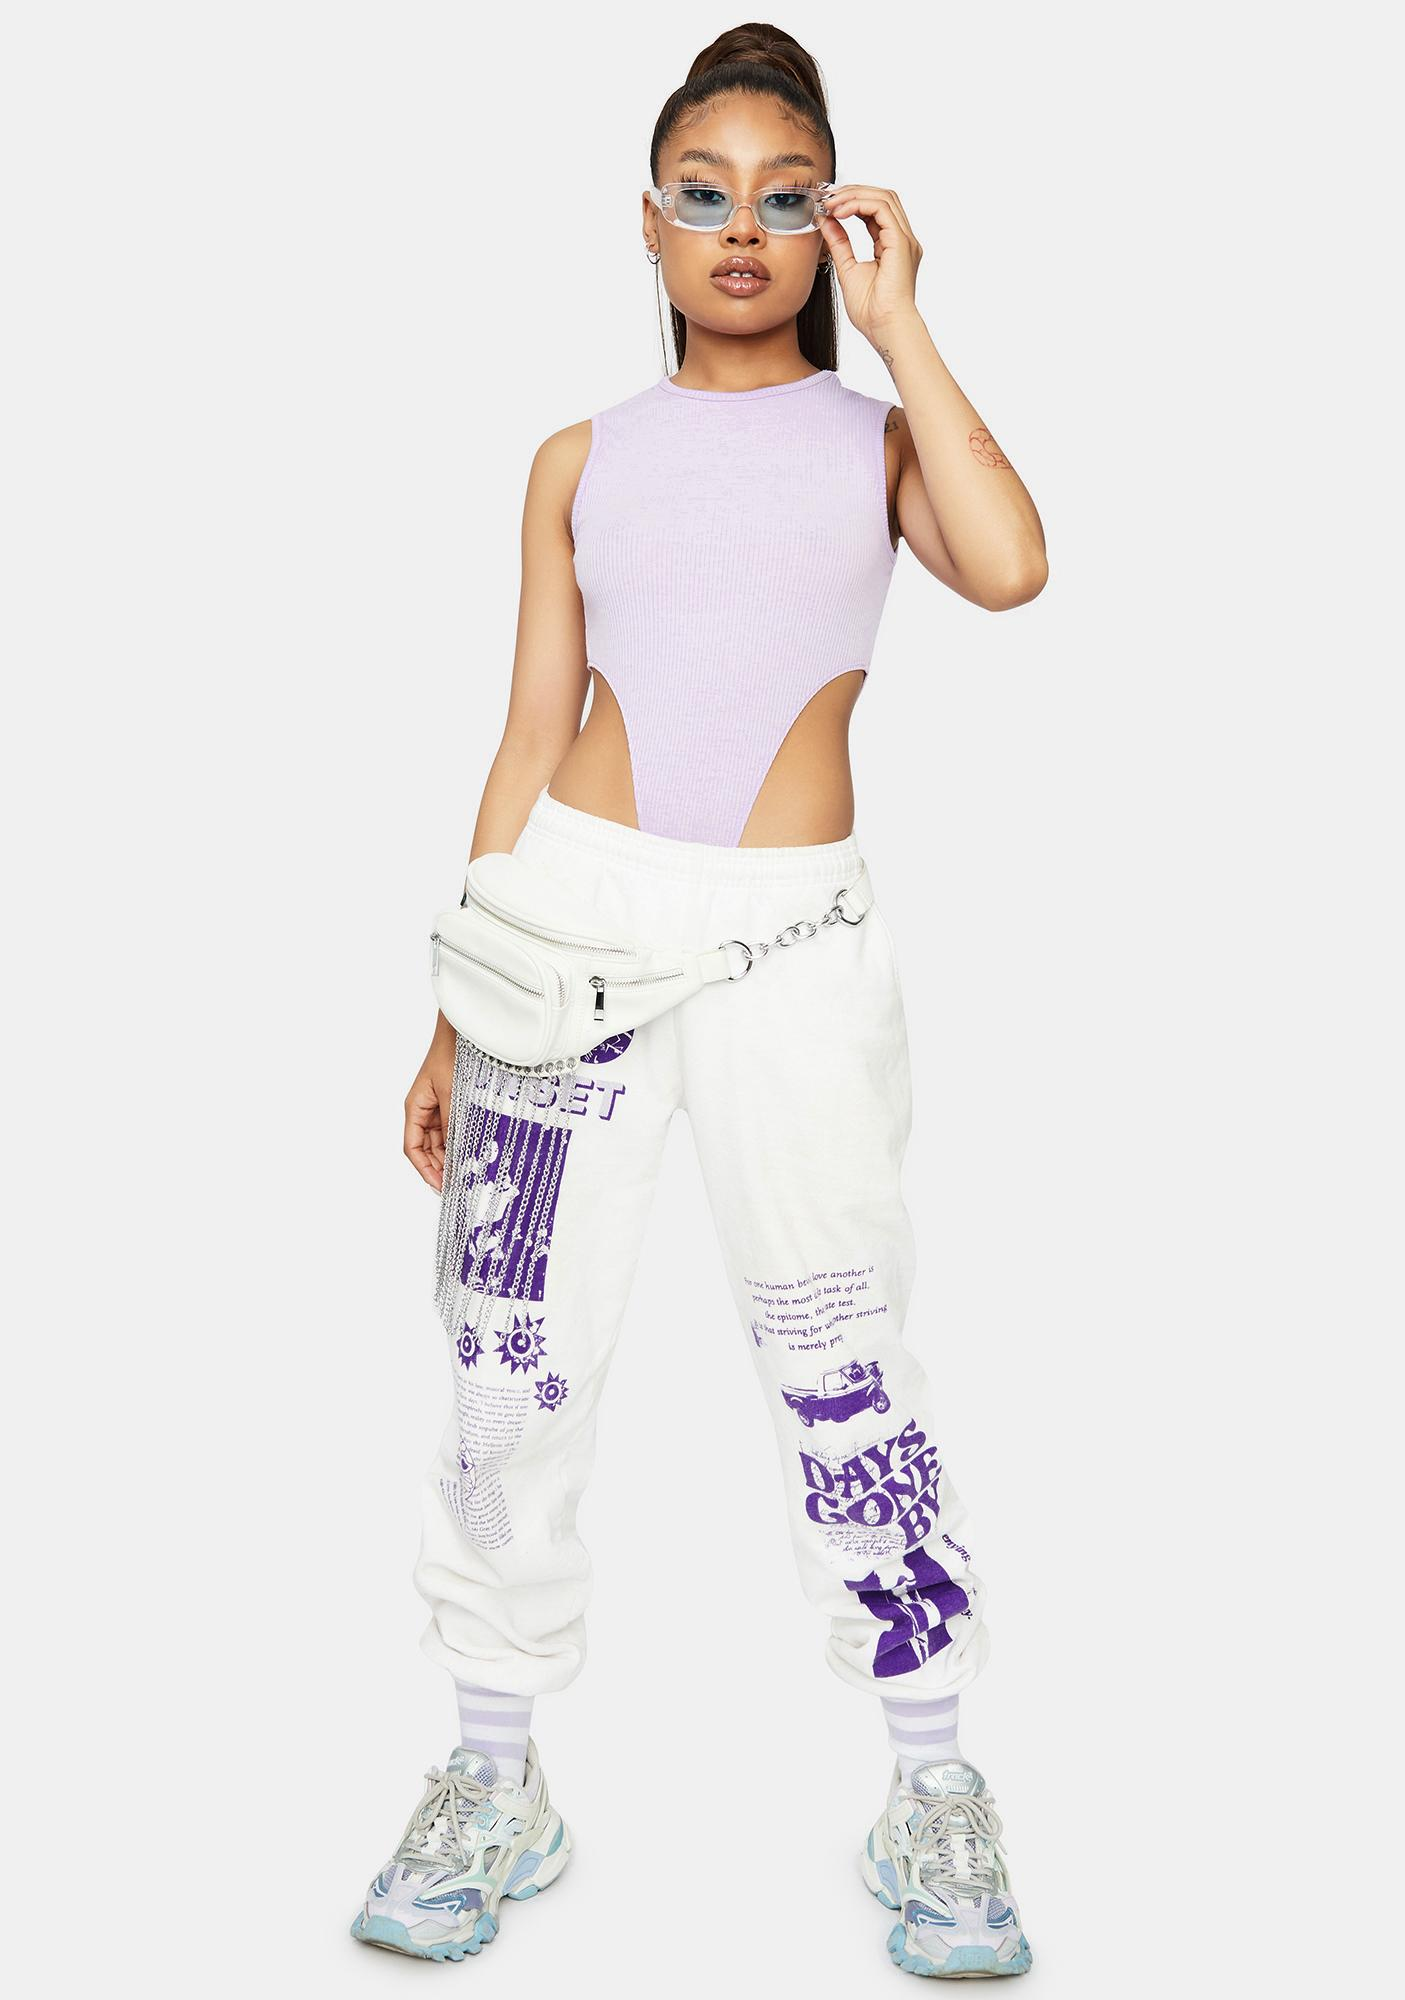 Lavender Rated R High Rise Bodysuit